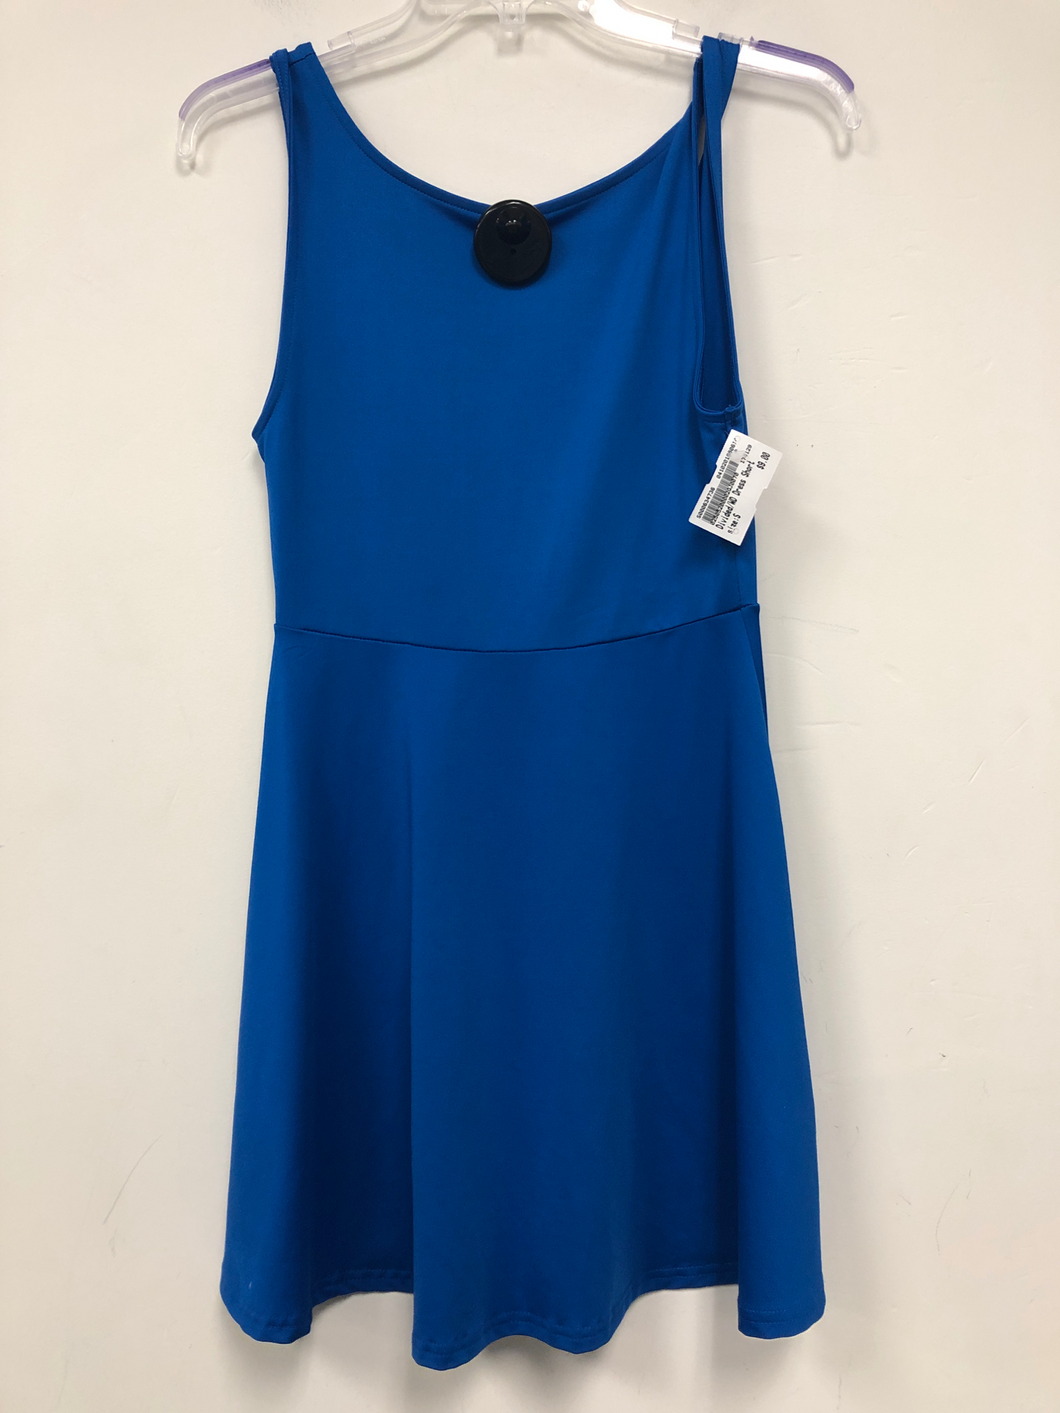 Divided Dress Size Small